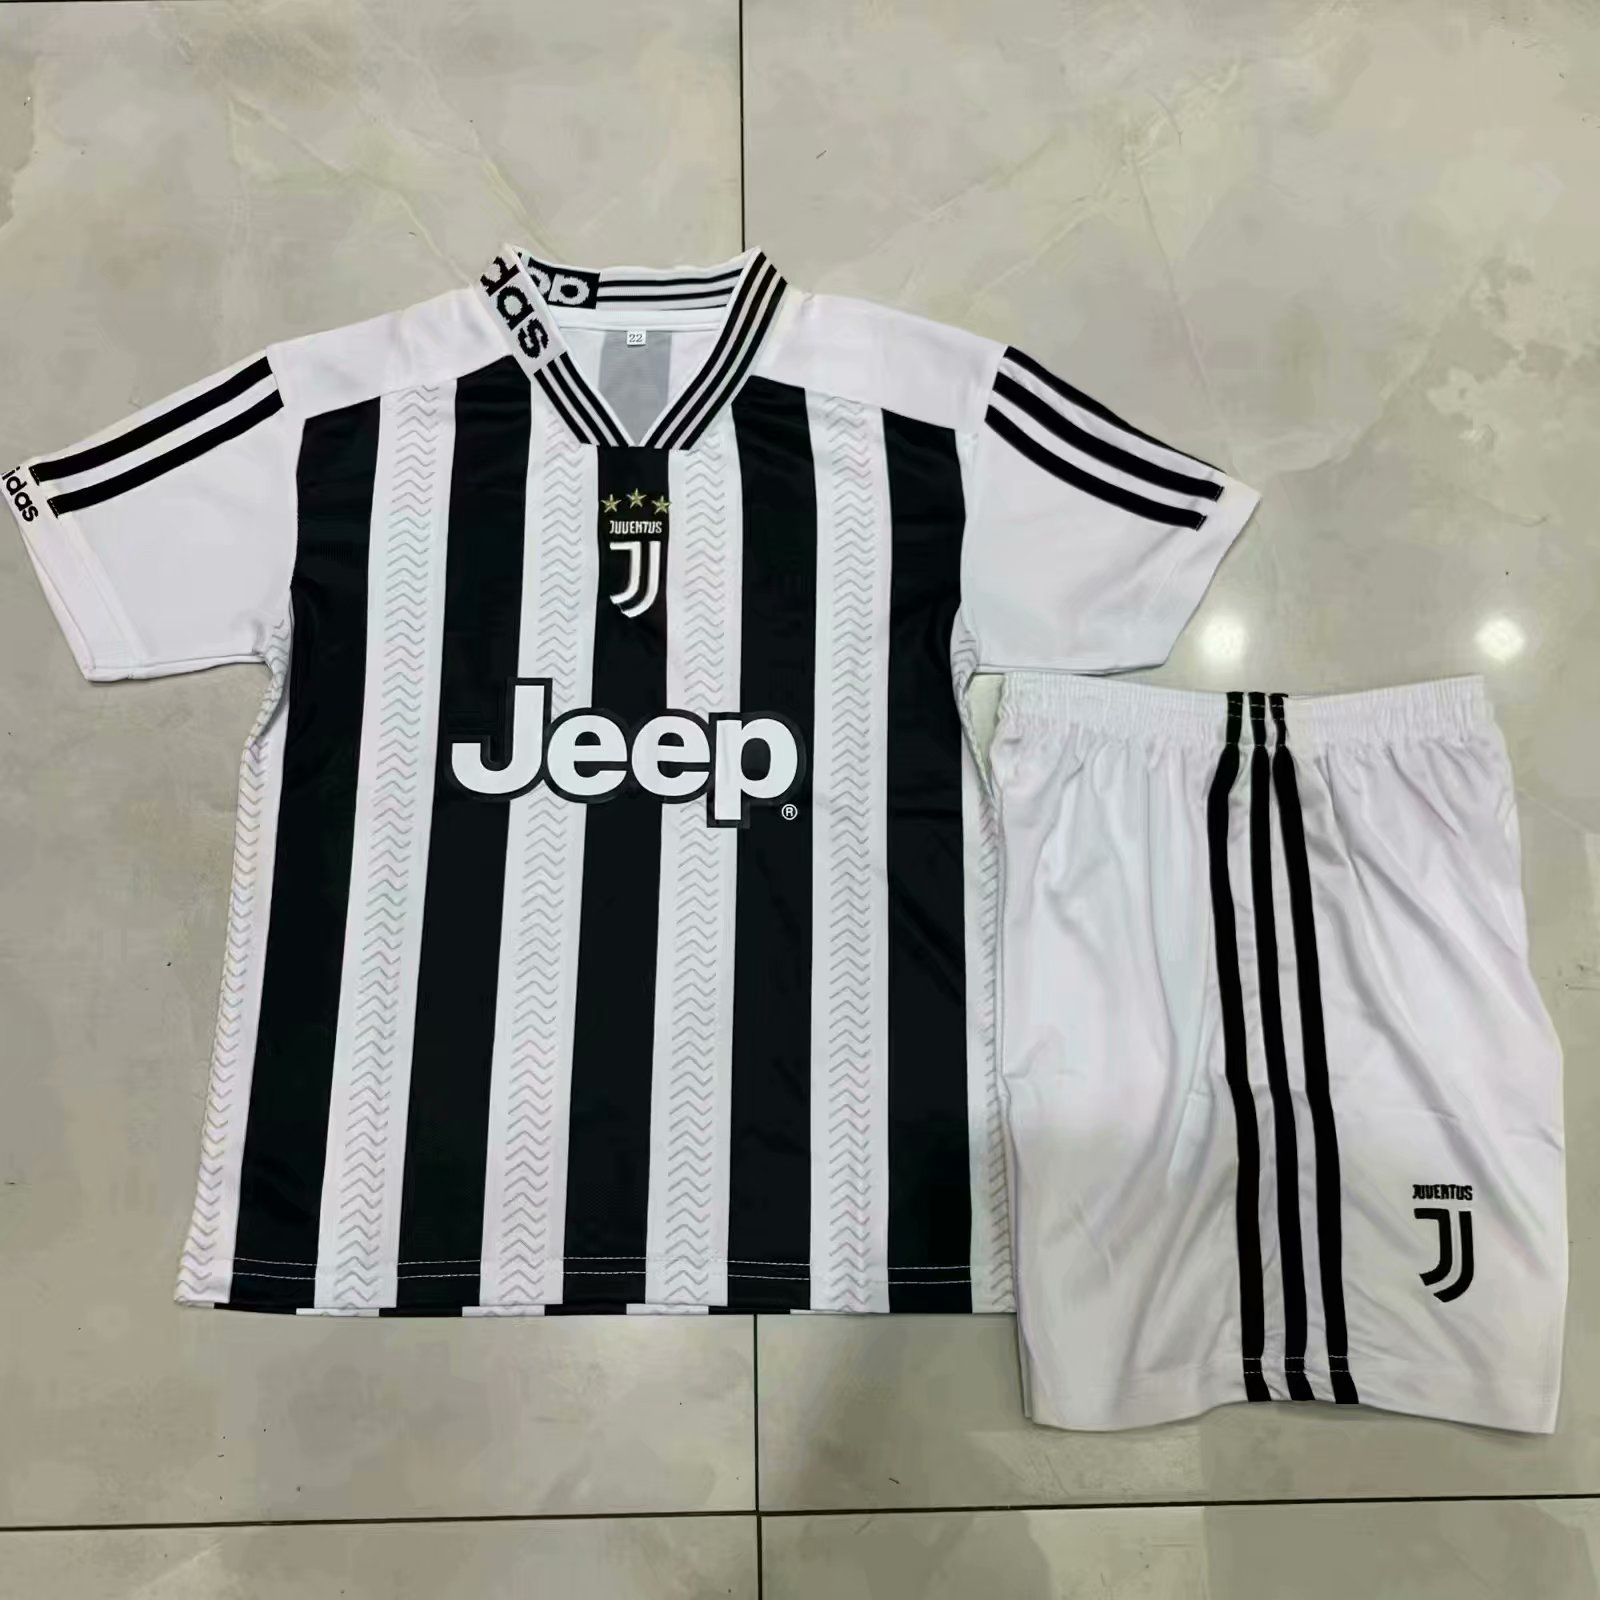 05343c3ebb9 2019 20 Kids Juventus Home Soccer Uniforms Children Football Kits